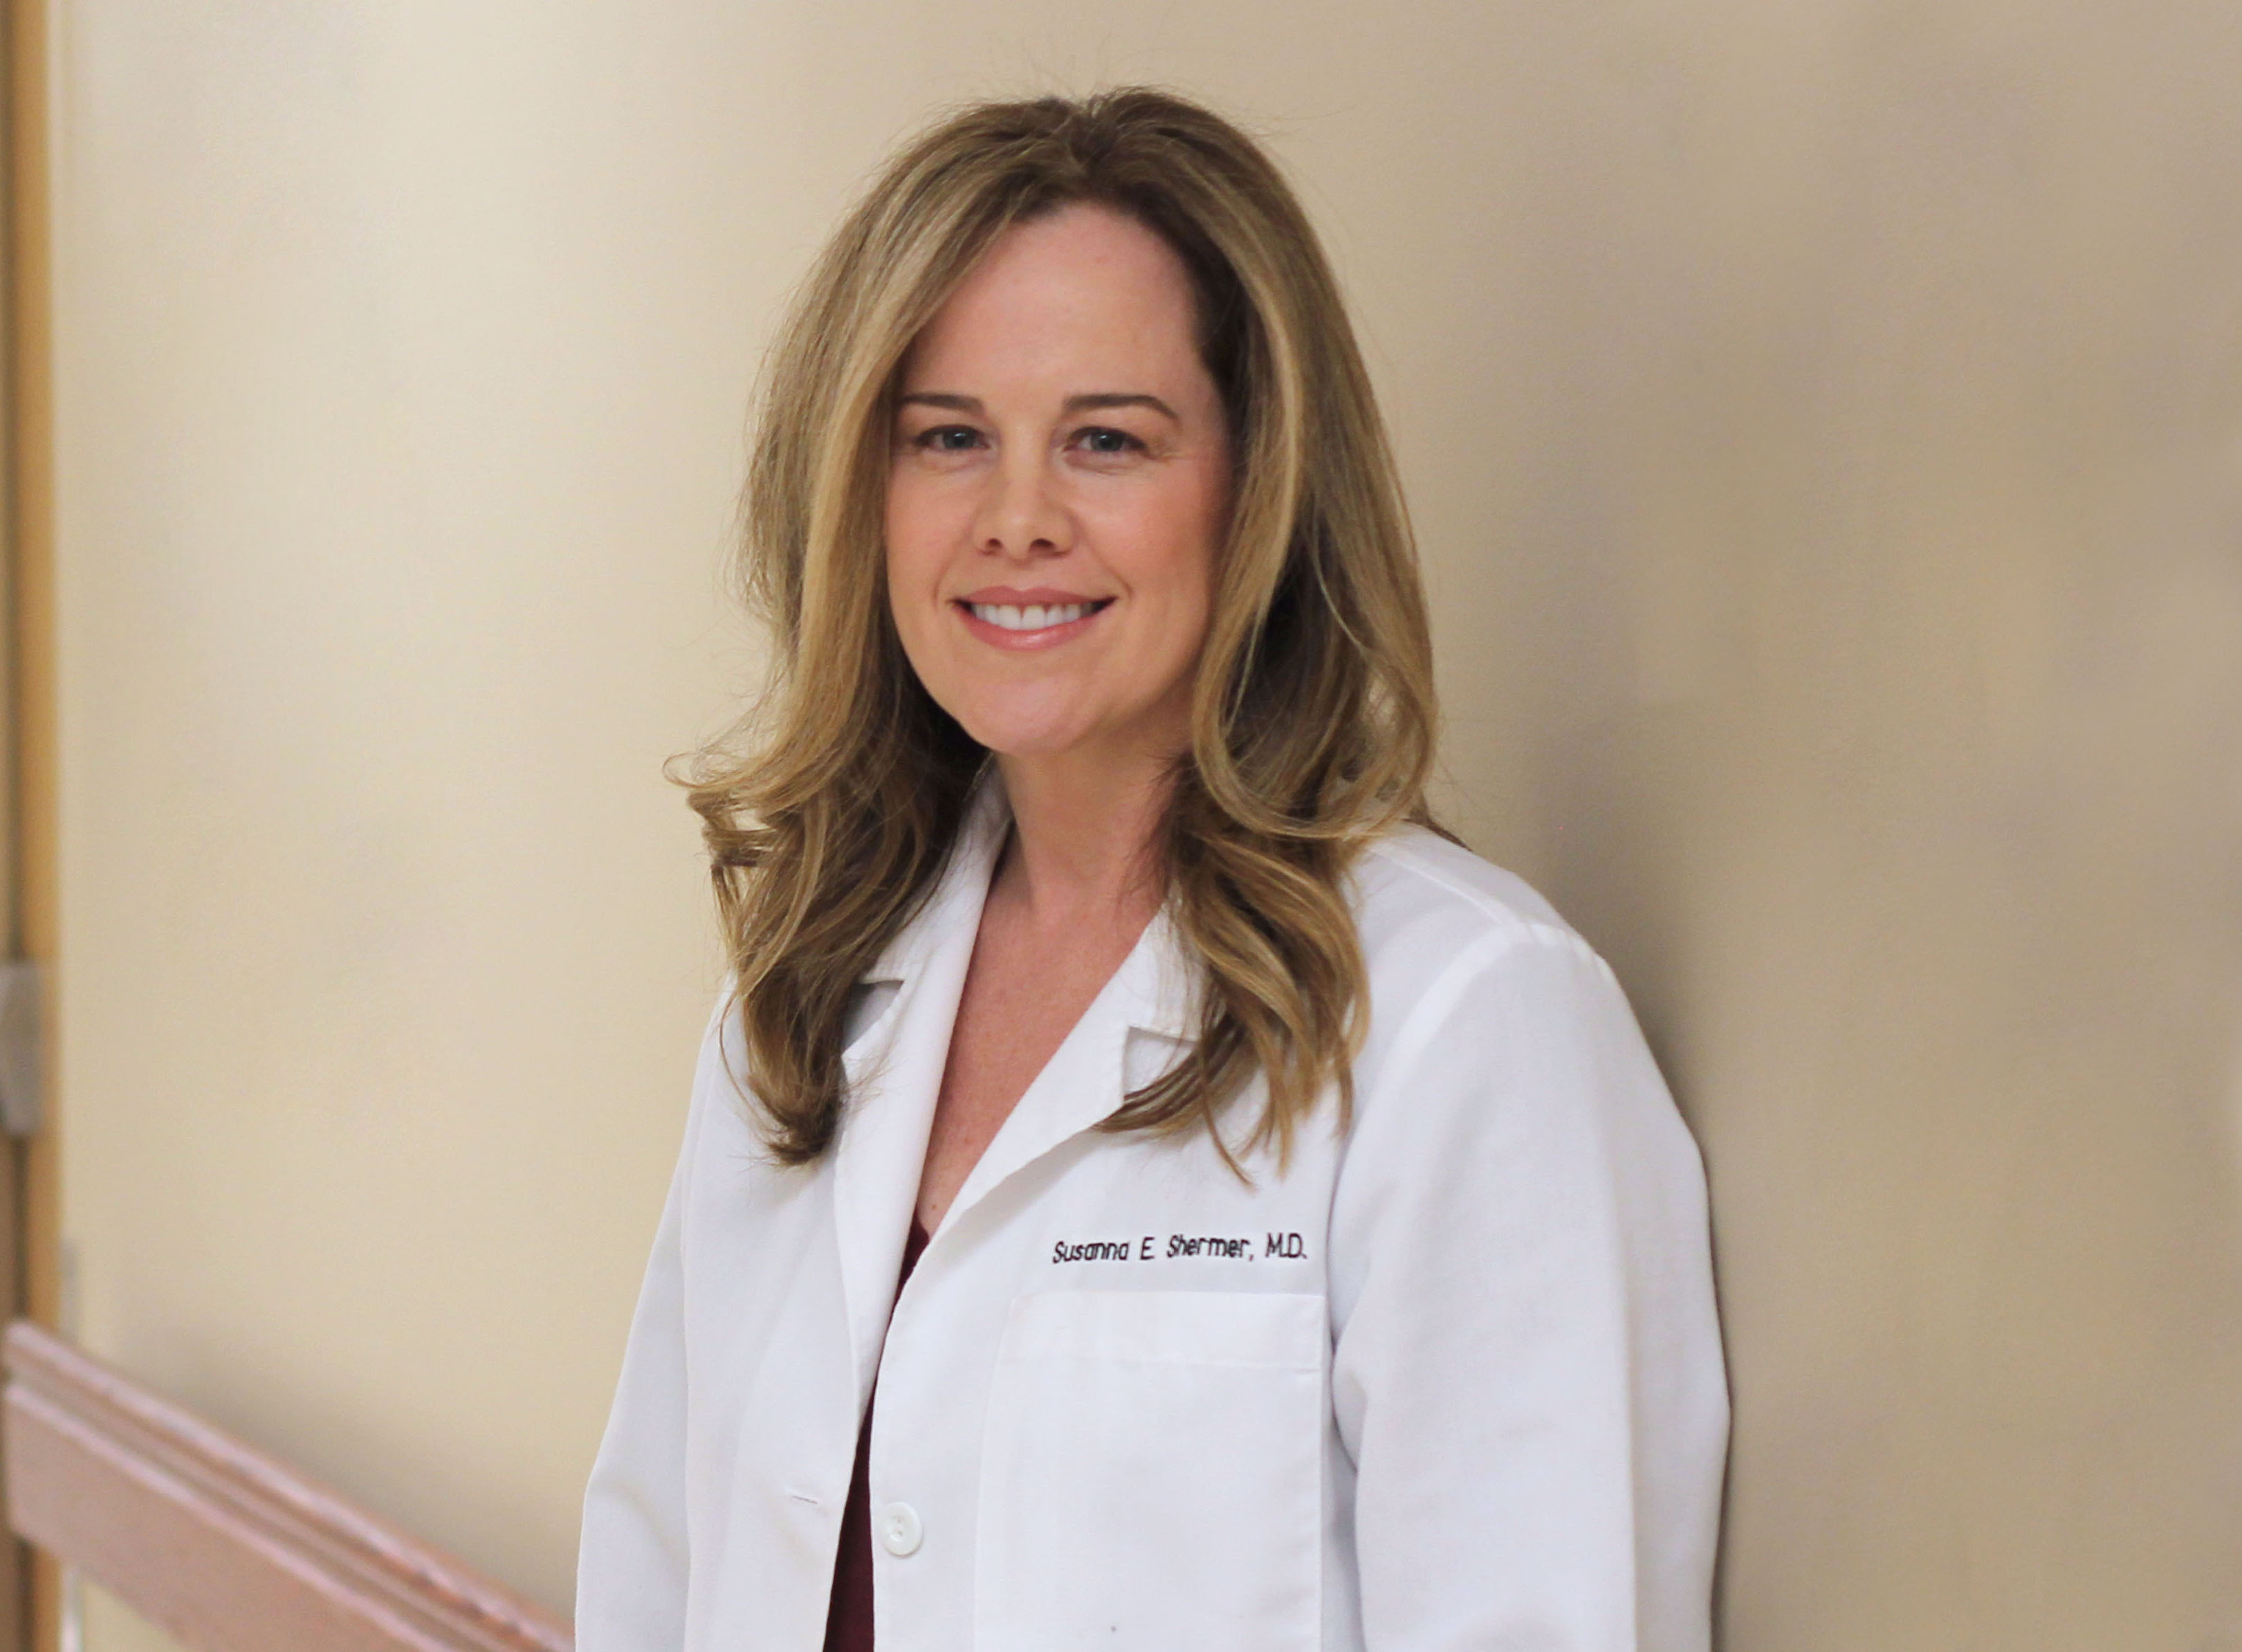 Primary Care Physician Keeps Family Front and Center